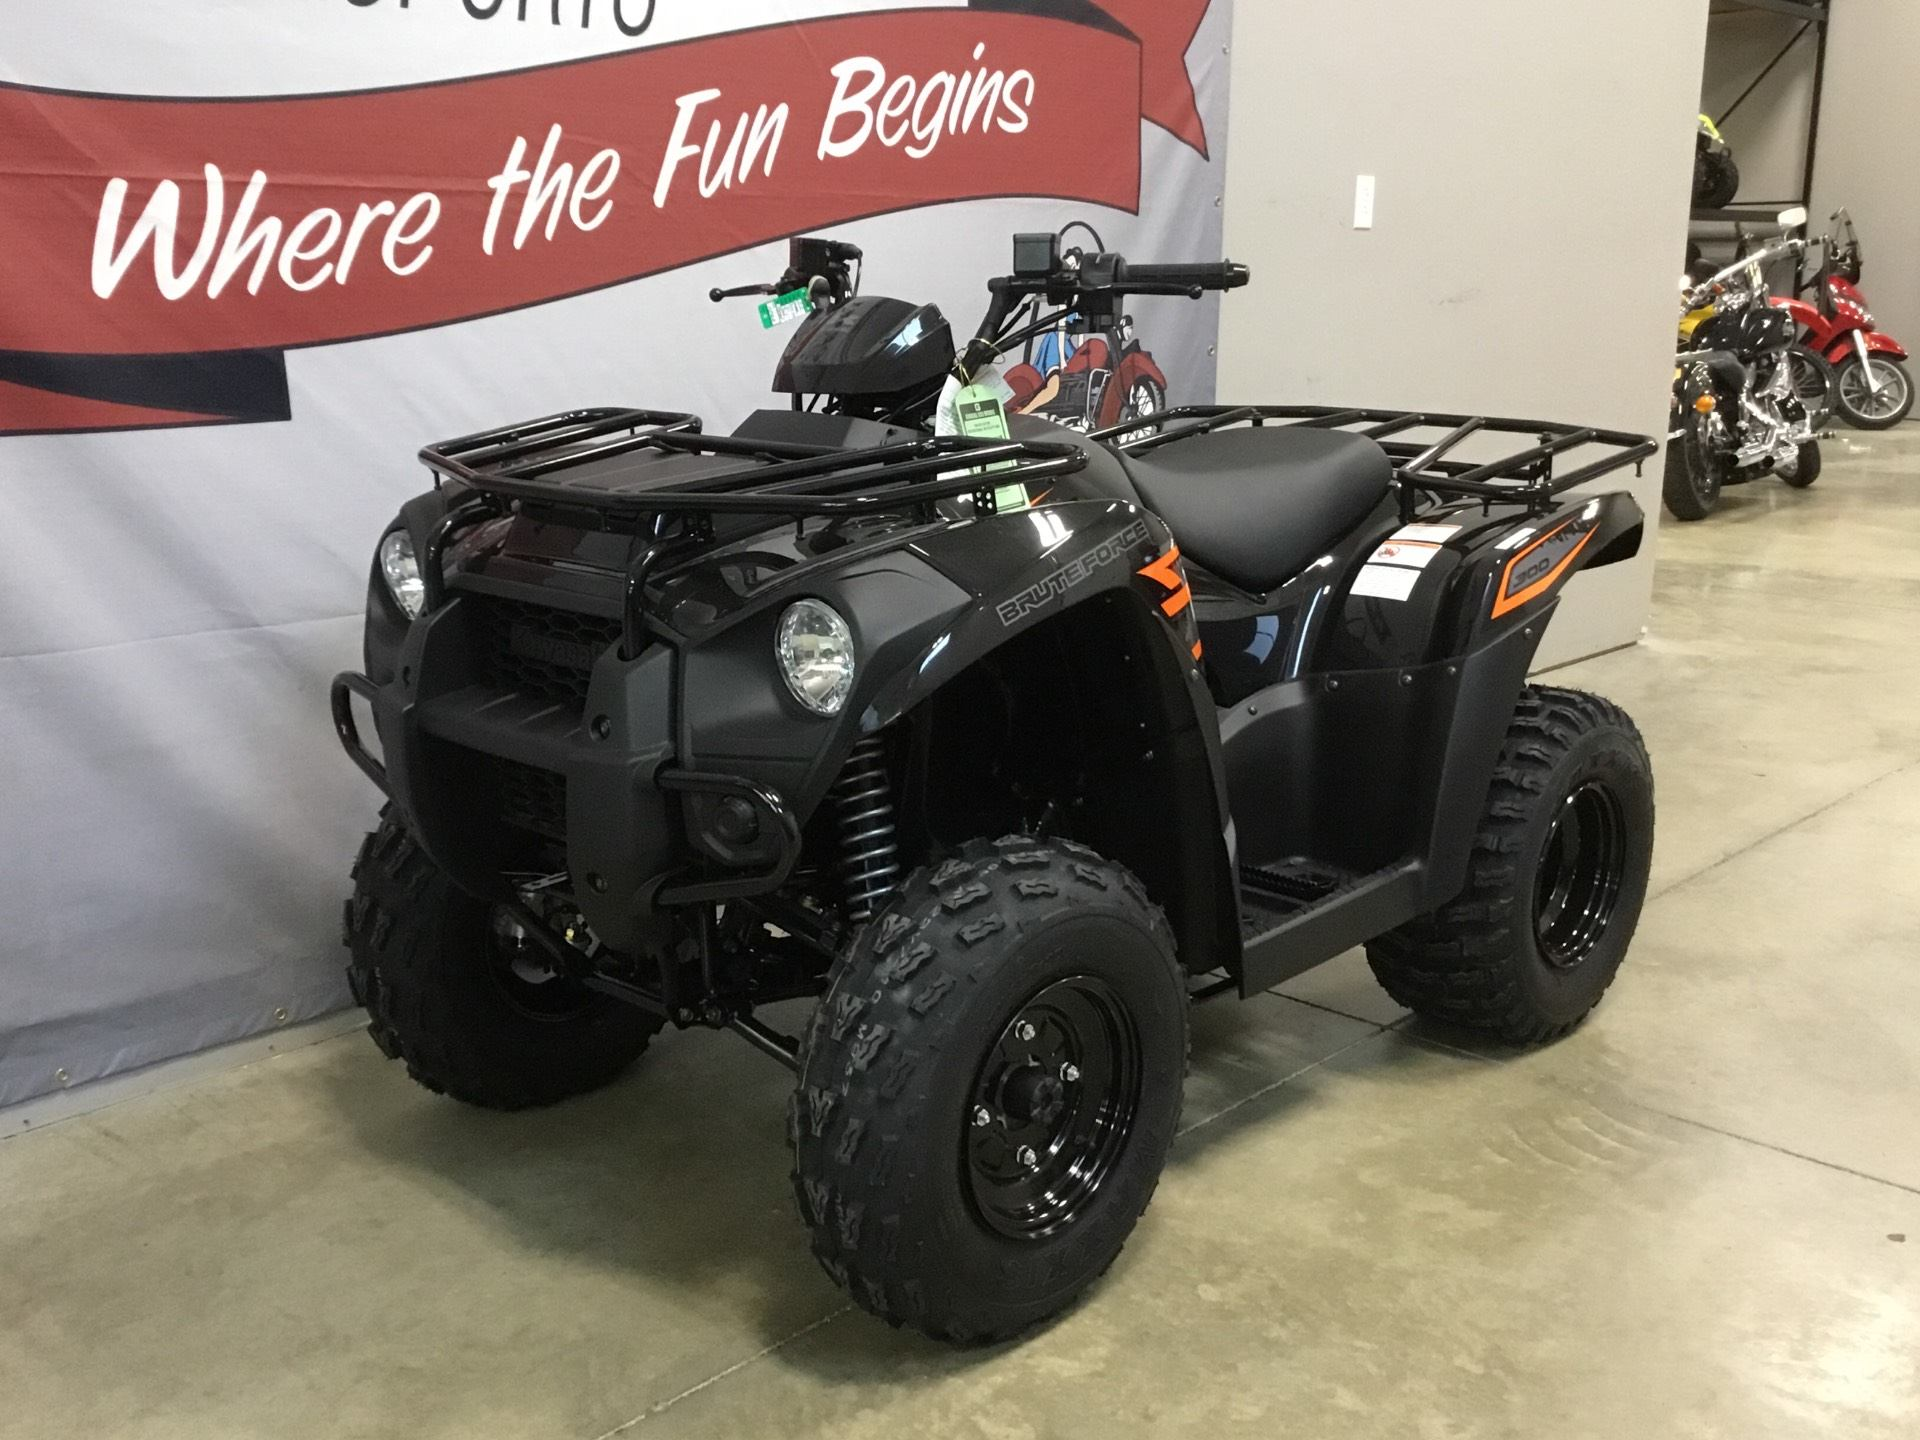 2018 Kawasaki Brute Force 300 in O Fallon, Illinois - Photo 2